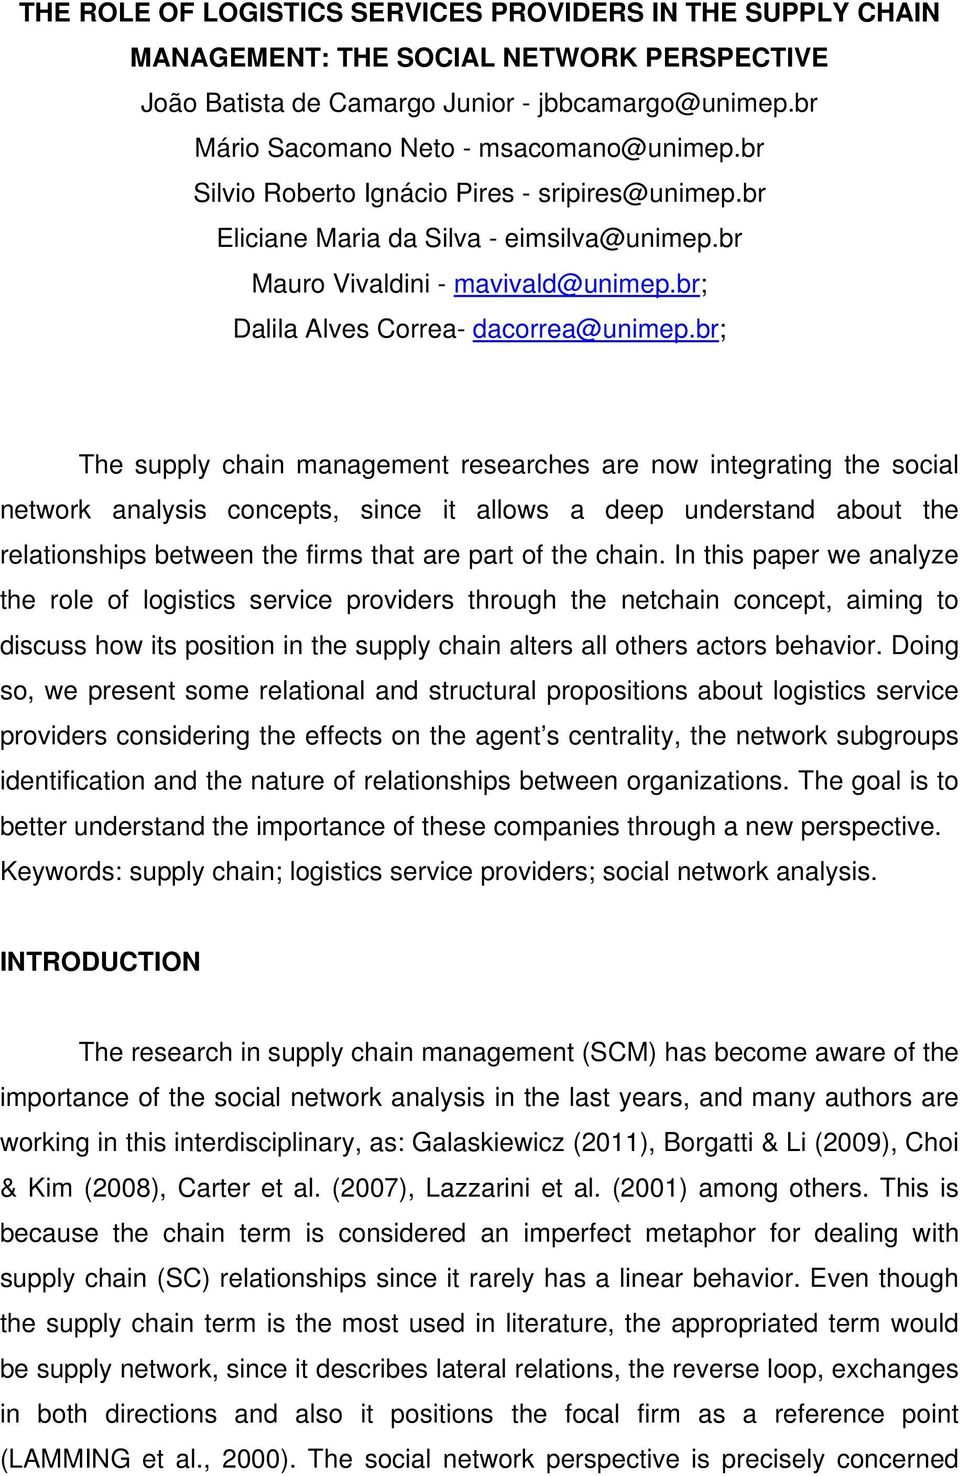 br; The supply chain management researches are now integrating the social network analysis concepts, since it allows a deep understand about the relationships between the firms that are part of the